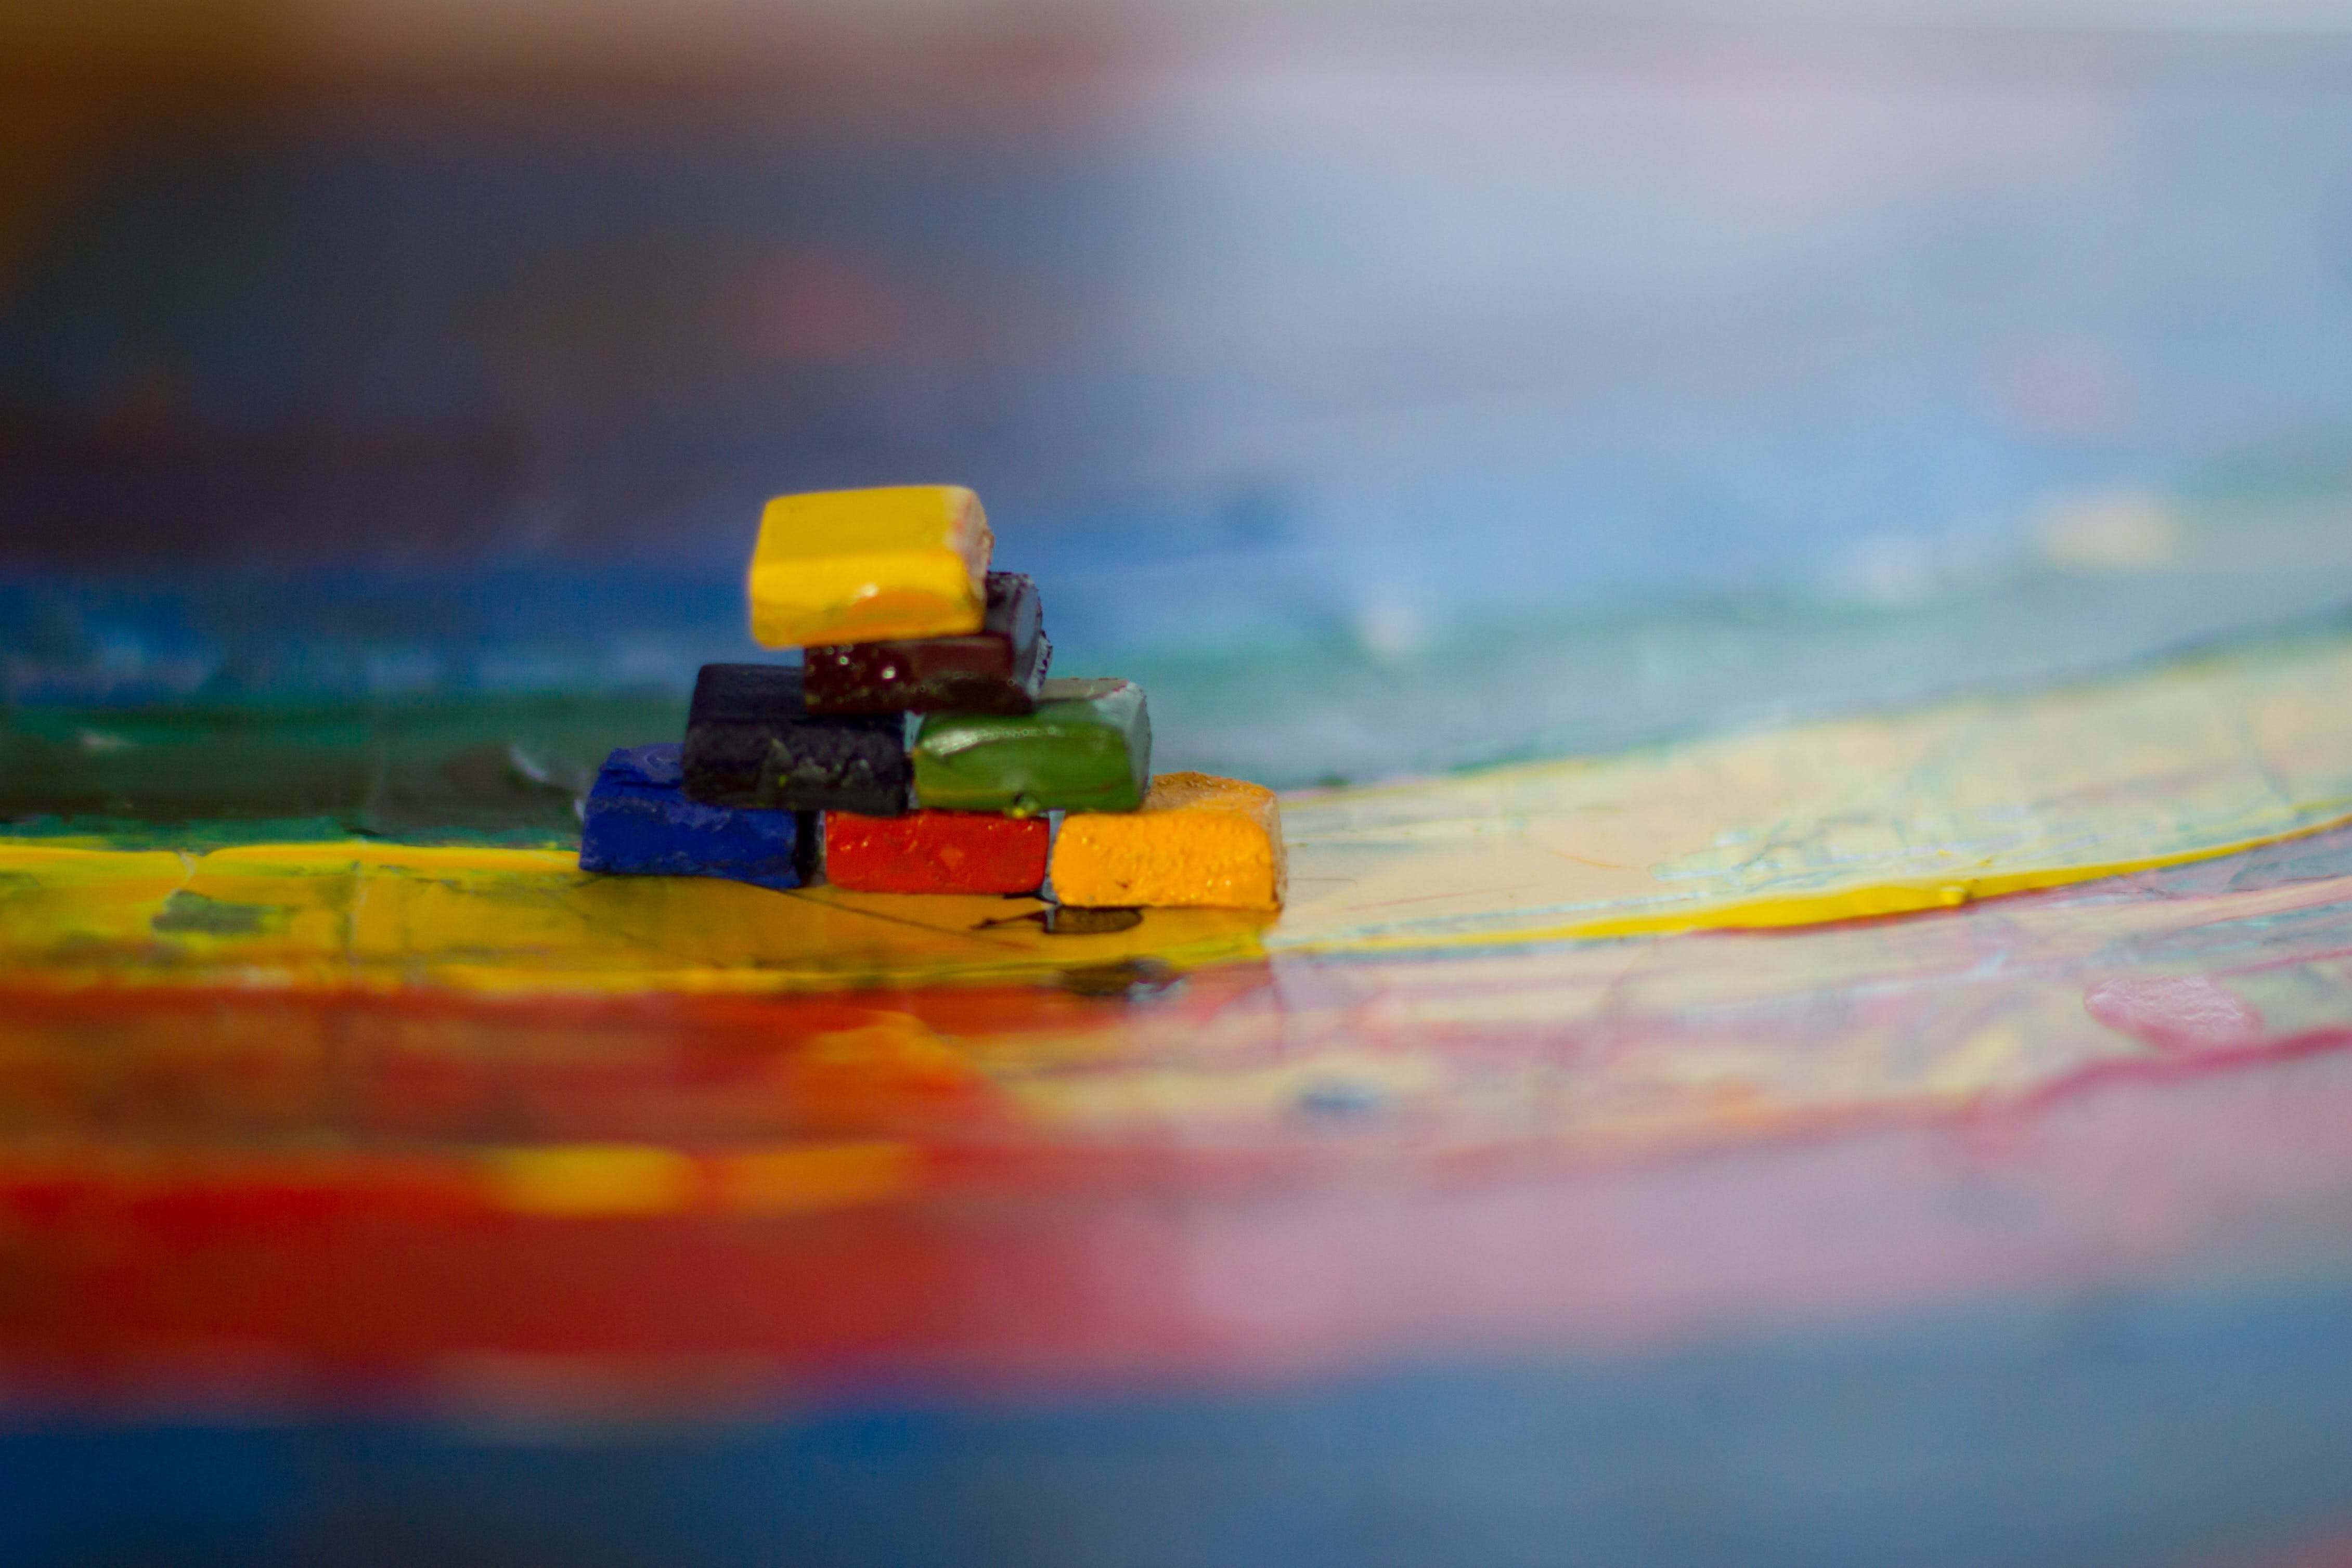 Focus Photo of Assorted-color Stacked Blocks